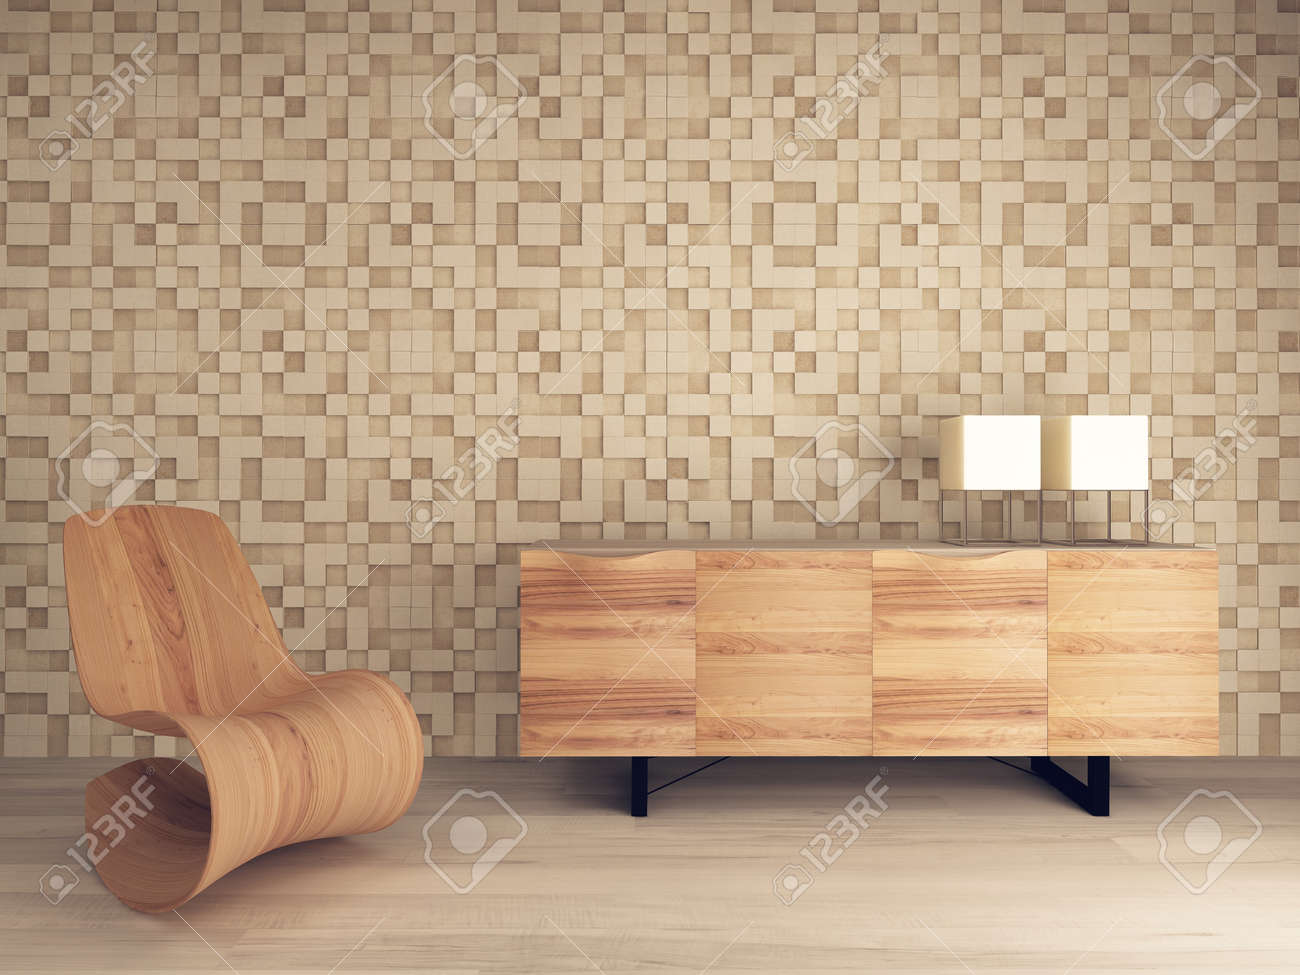 Picture Of Wooden Lounge Chair Against Mosaic Pattern Wall With Sideboard  Stock Photo   28283437